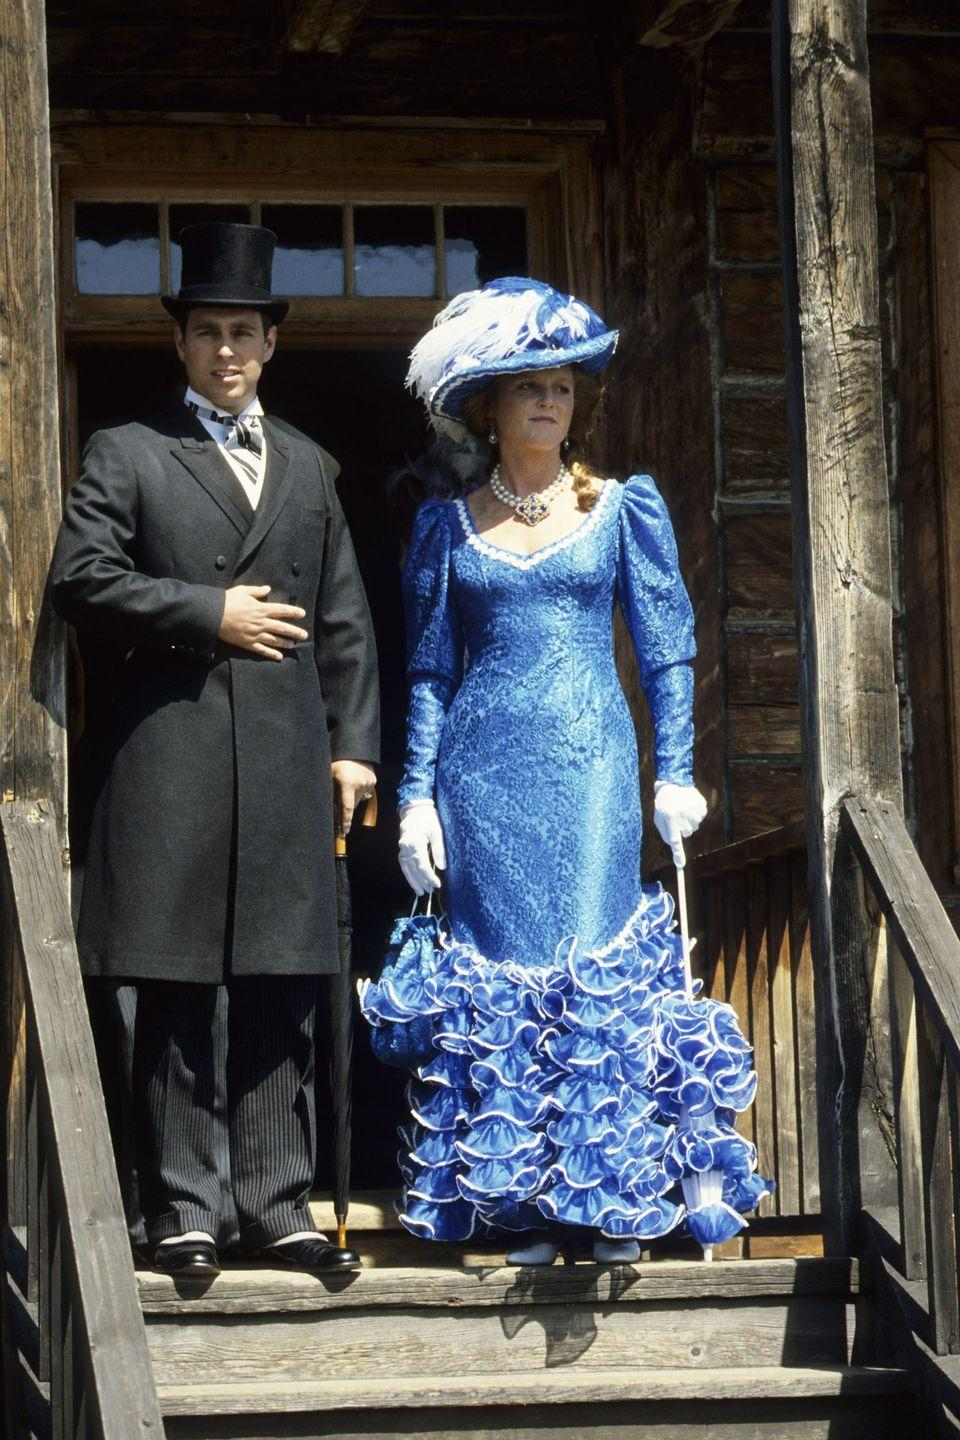 <p>Prince Andrew and Sarah Ferguson in traditional Klondike costumes during a visit to Fort Edmonton, Canada.</p>